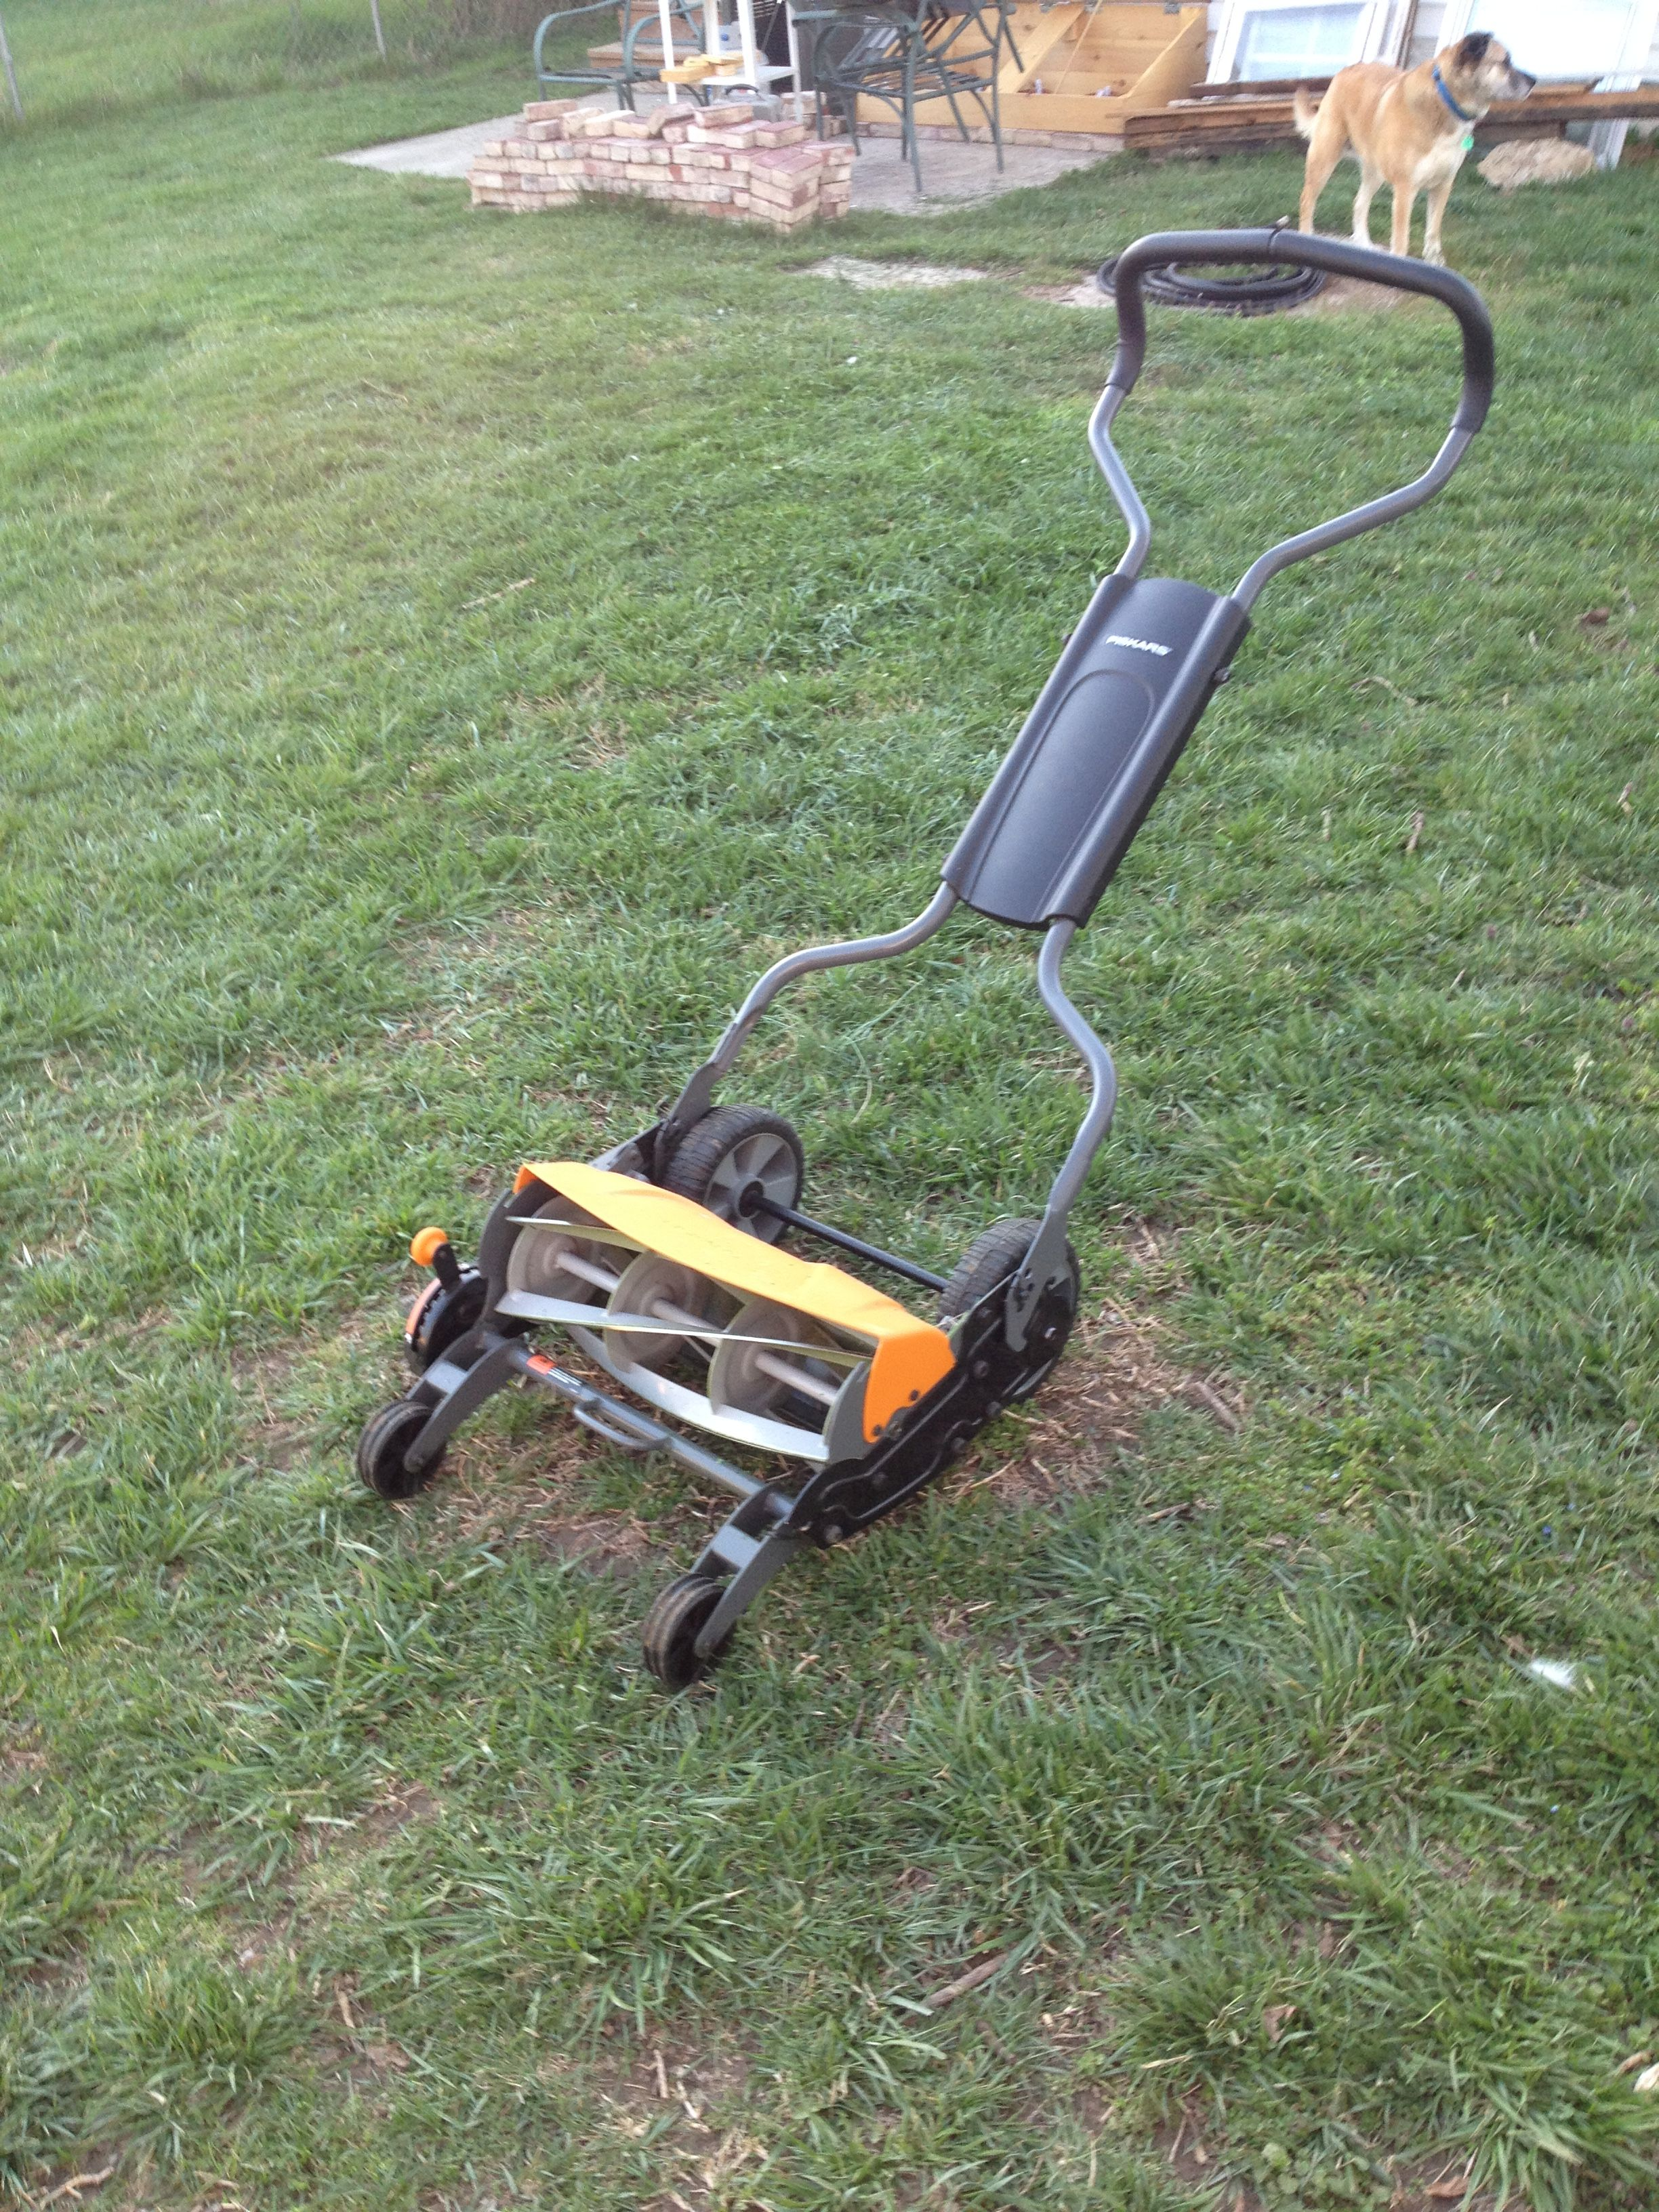 Fun with DIY lawn mowing